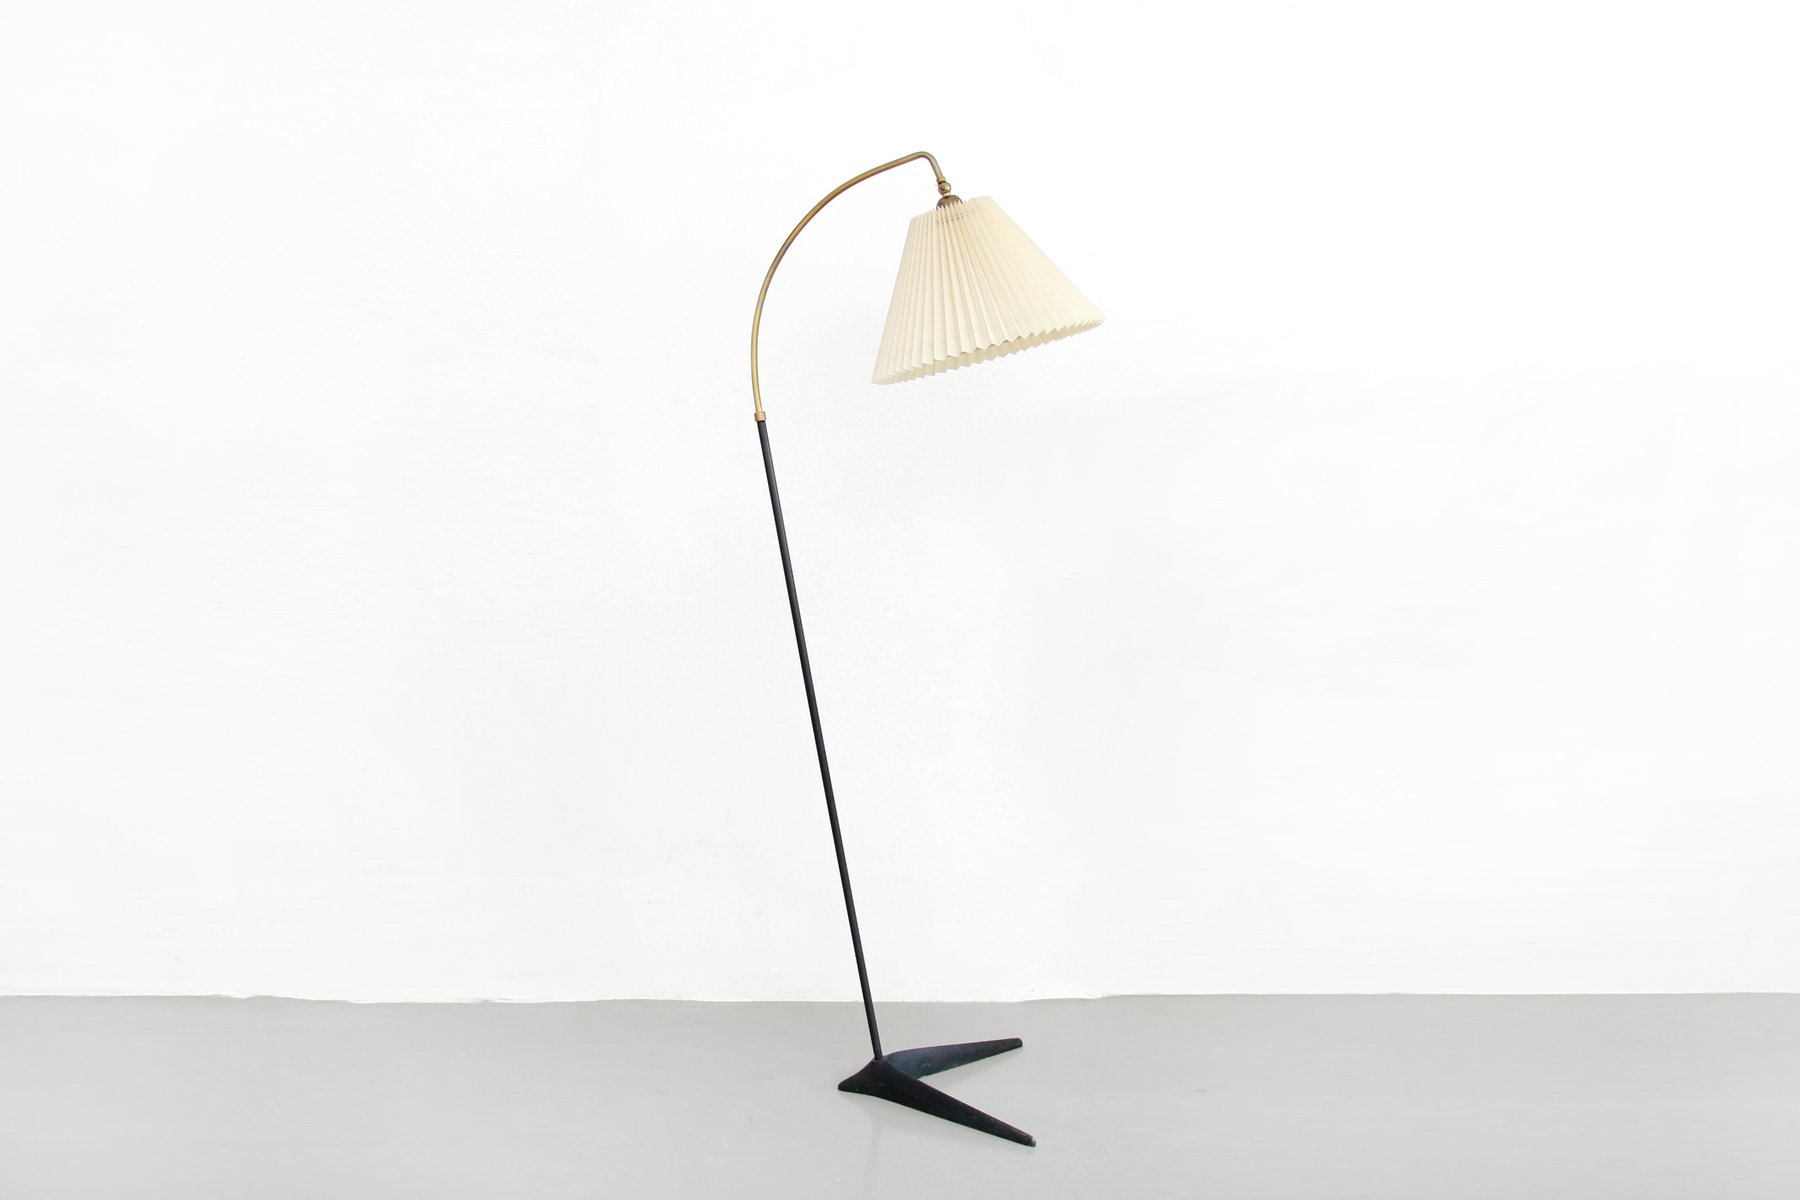 danish standing lamp with le klint shade by svend aage. Black Bedroom Furniture Sets. Home Design Ideas